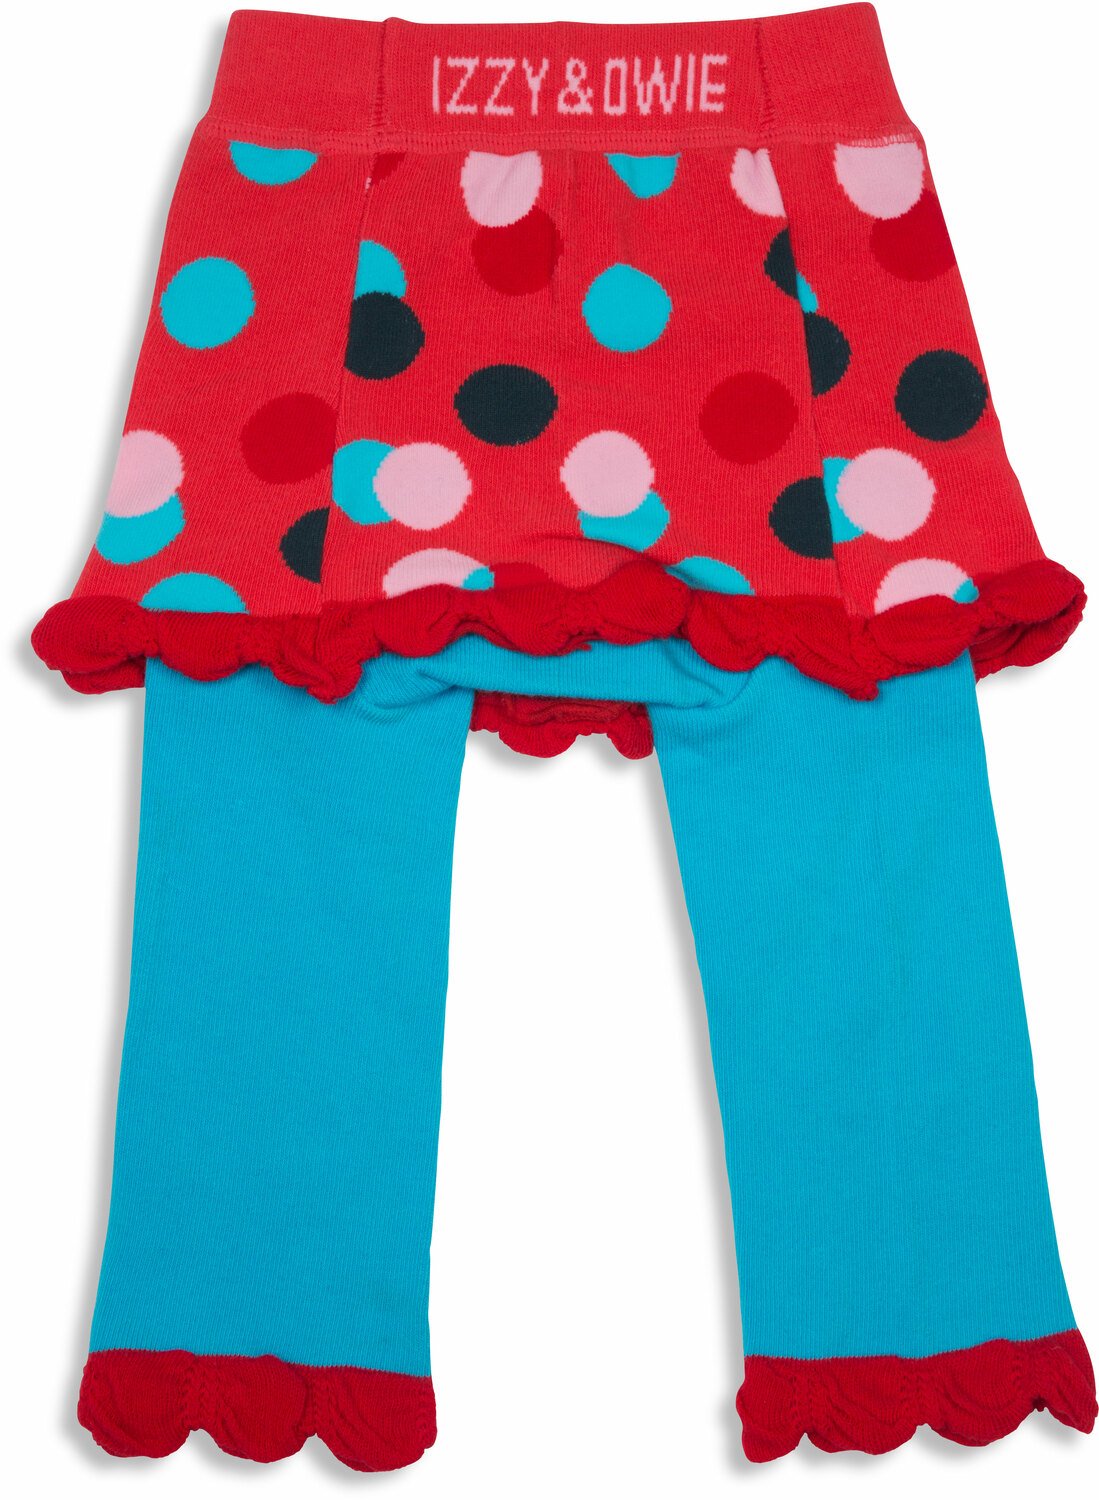 29a762be5 Coral and Blue Polka Dot, 6-12 Months Skirted-Leggings - Izzy & Owie ...